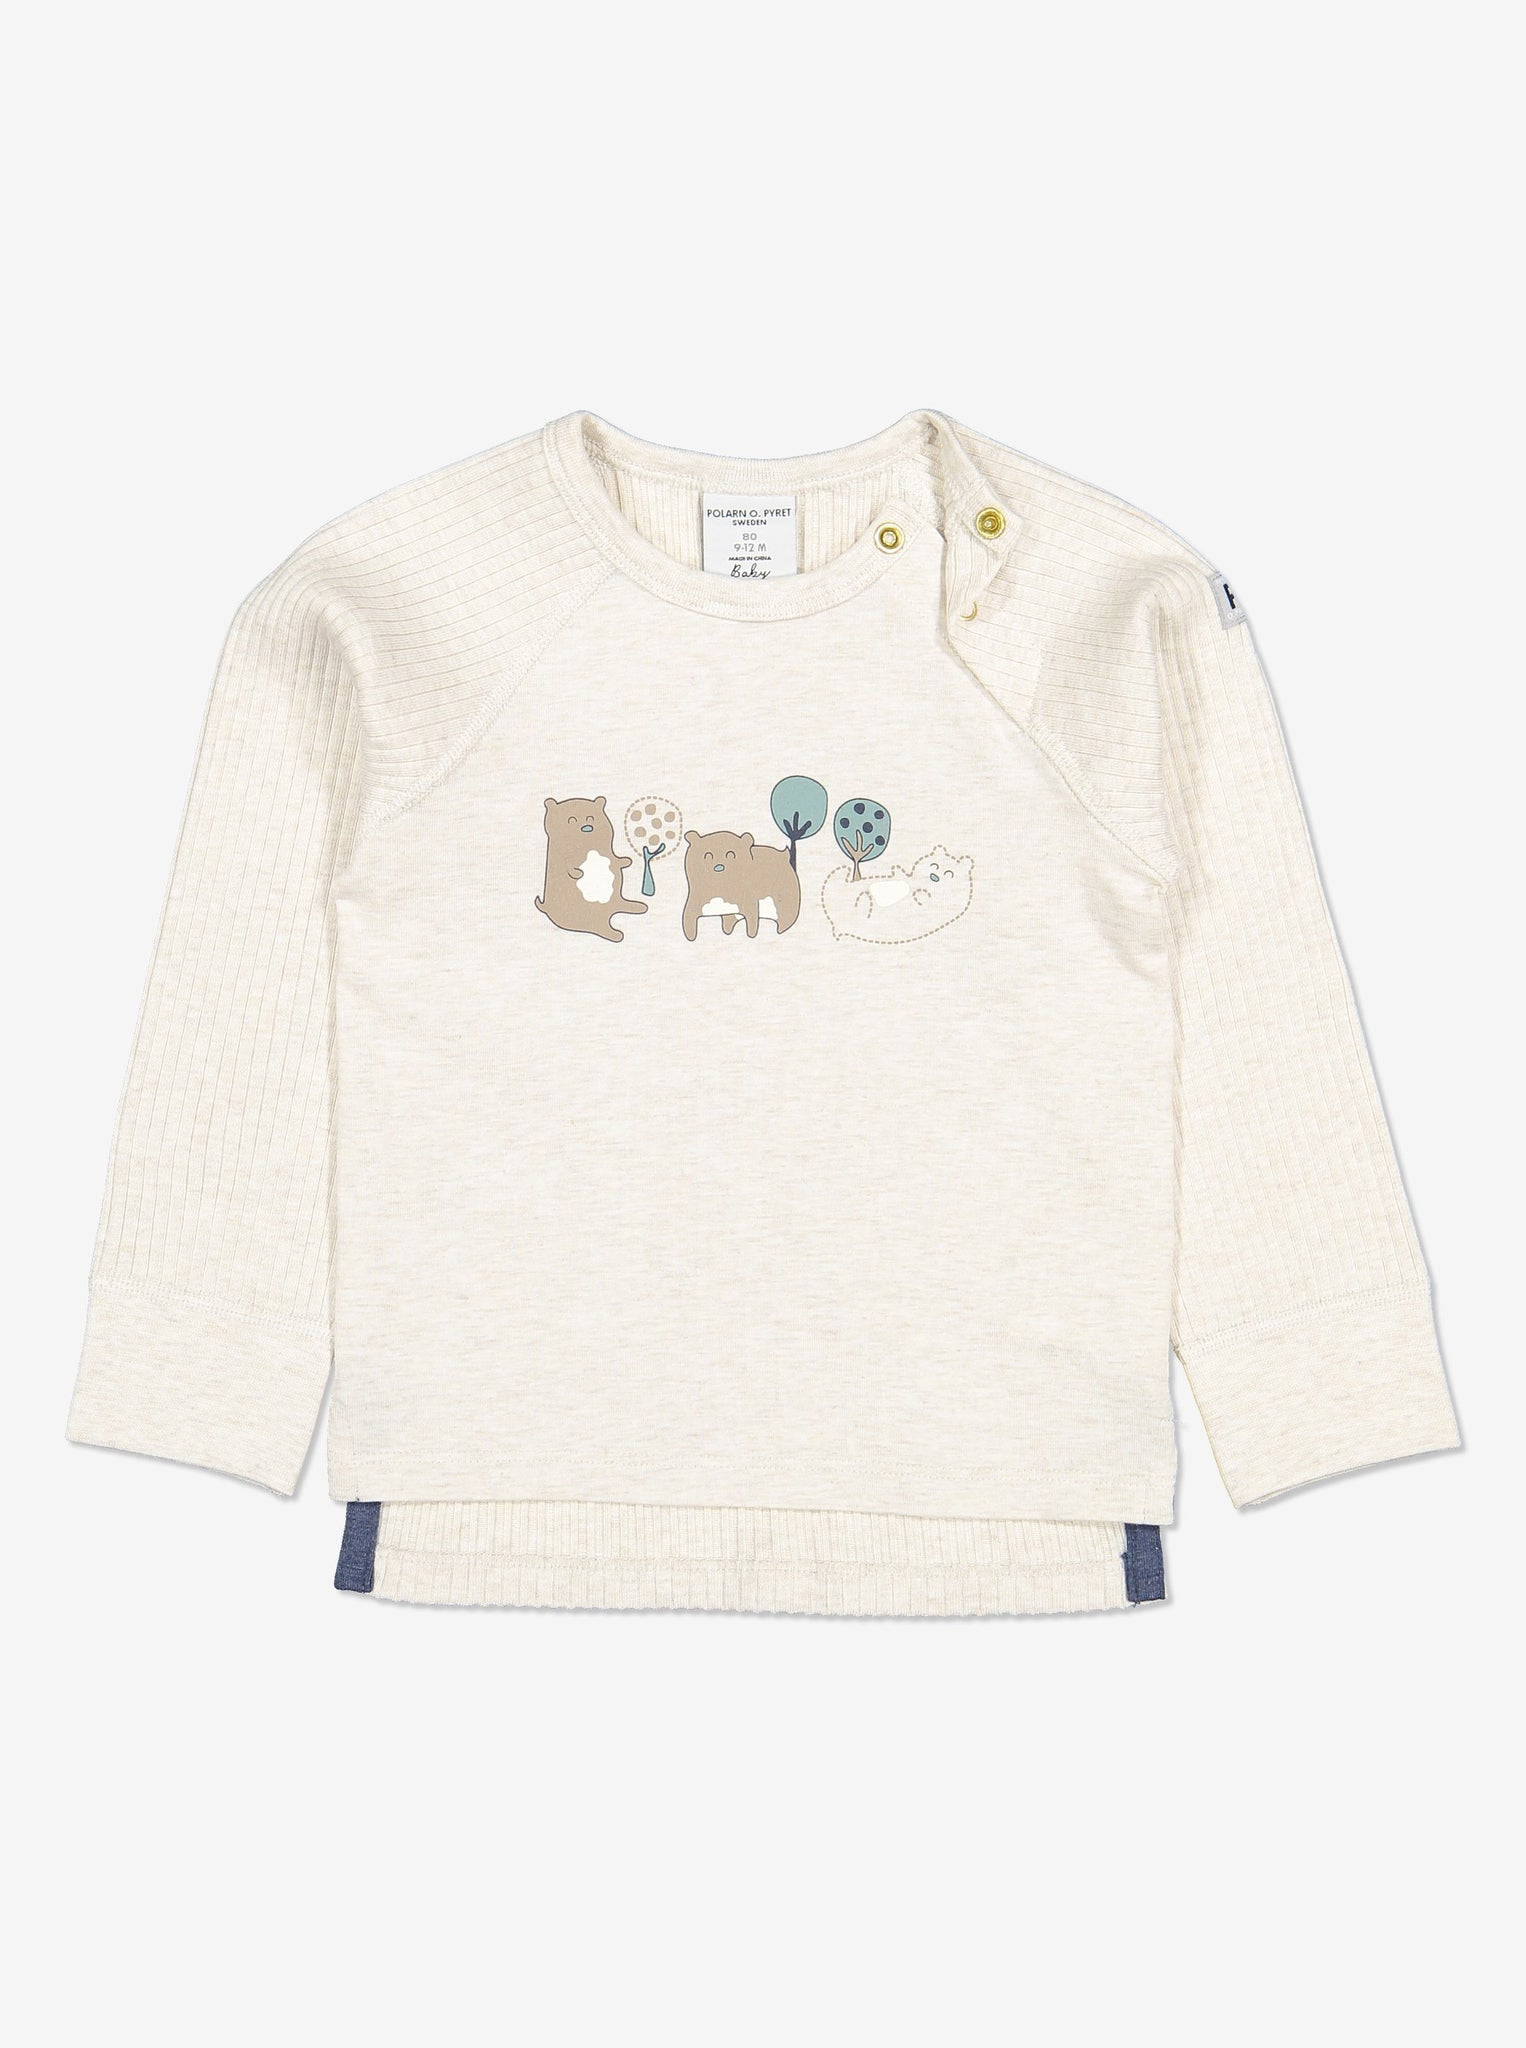 Ribbed Baby Top-Unisex-6m-1y-White